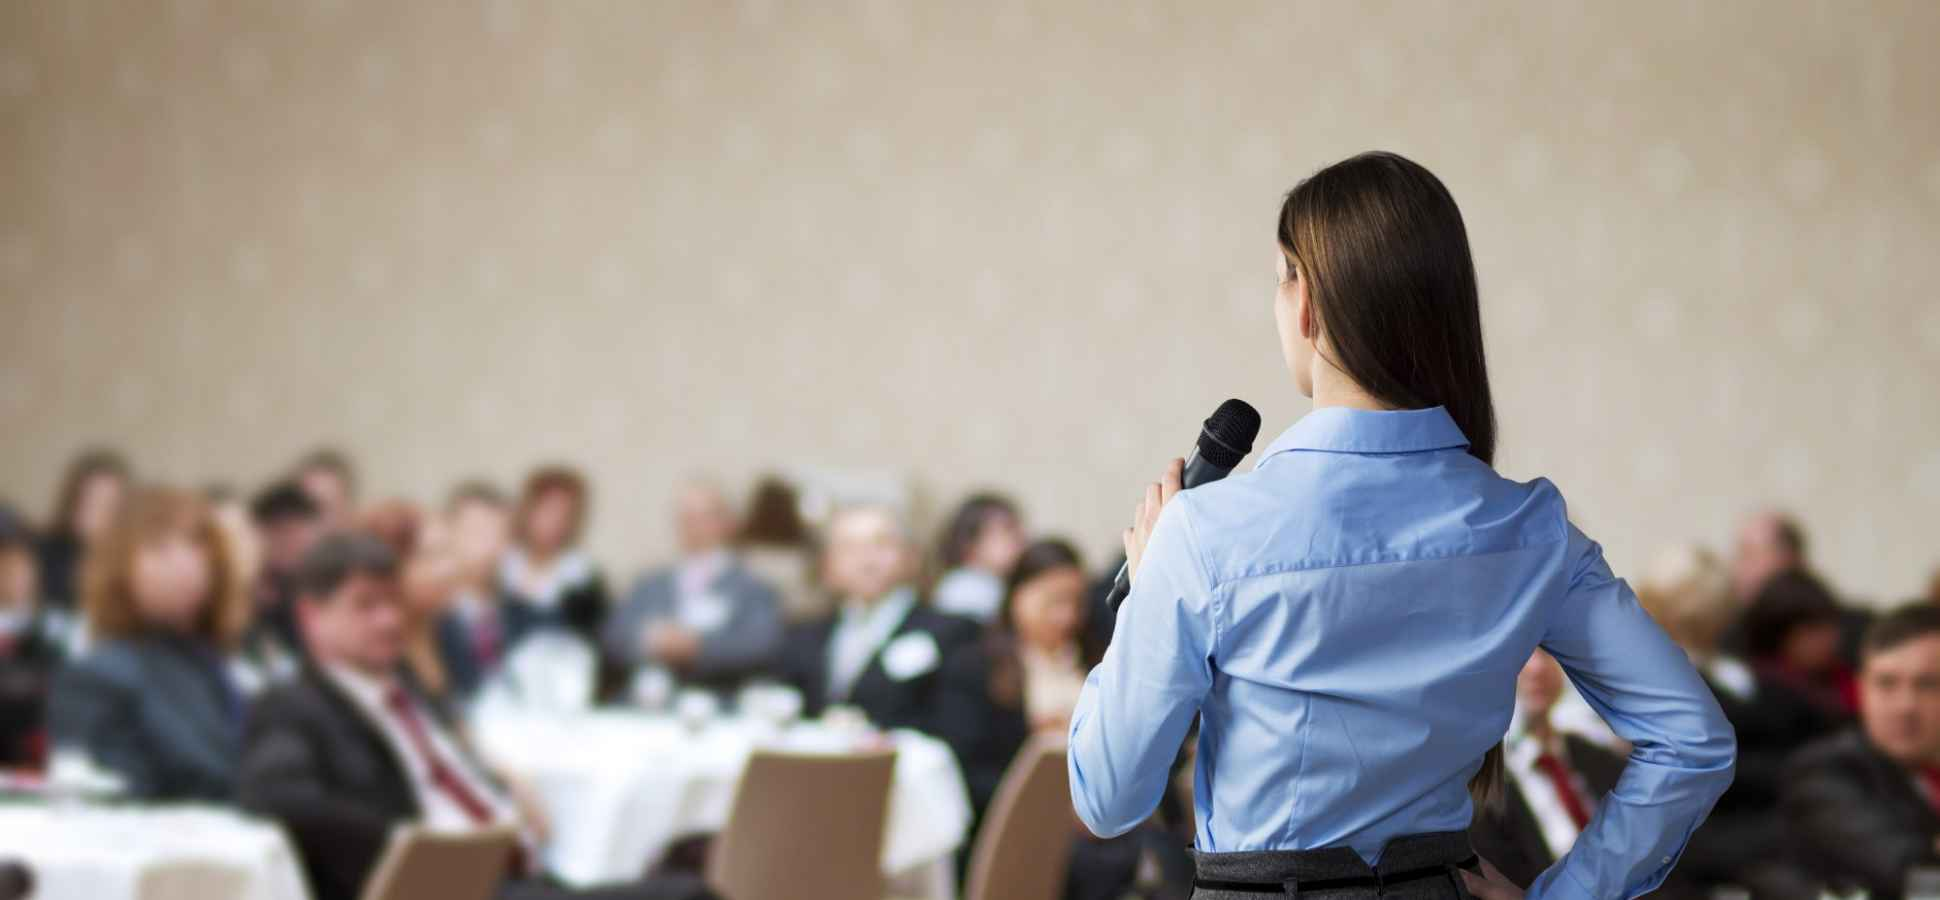 6 Must-Read Books on Public Speaking That Will Perfect Your Pitch